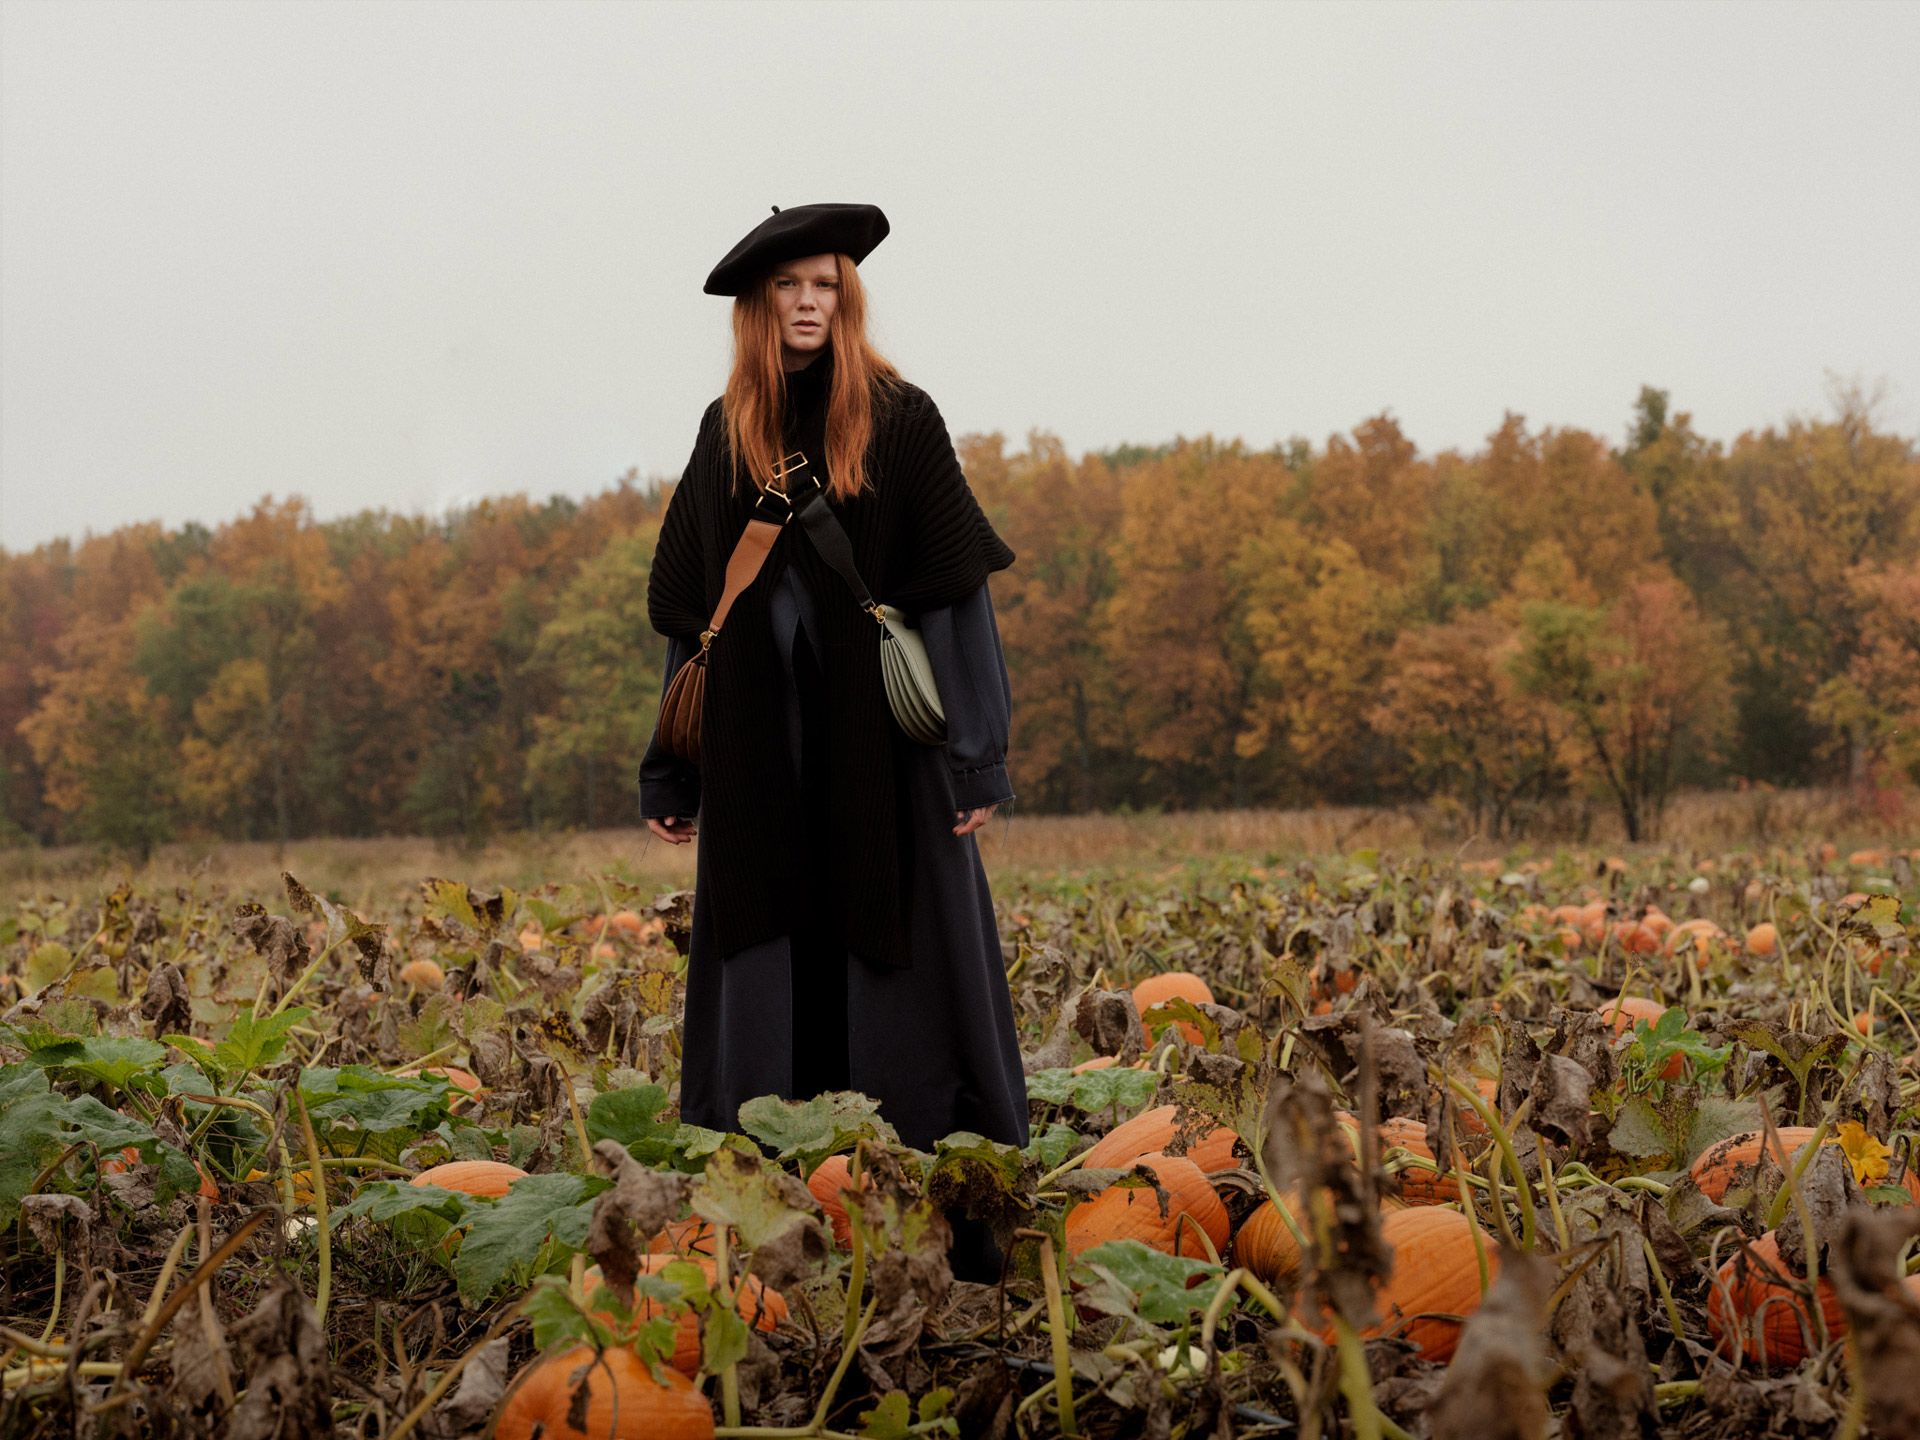 redhead female model standing all dressed in black in pumpkin patch with two crossbody leather purses photographed by Alexi Hobbs for Want Les Essentiels pre-Autumn Winter 2019 collection